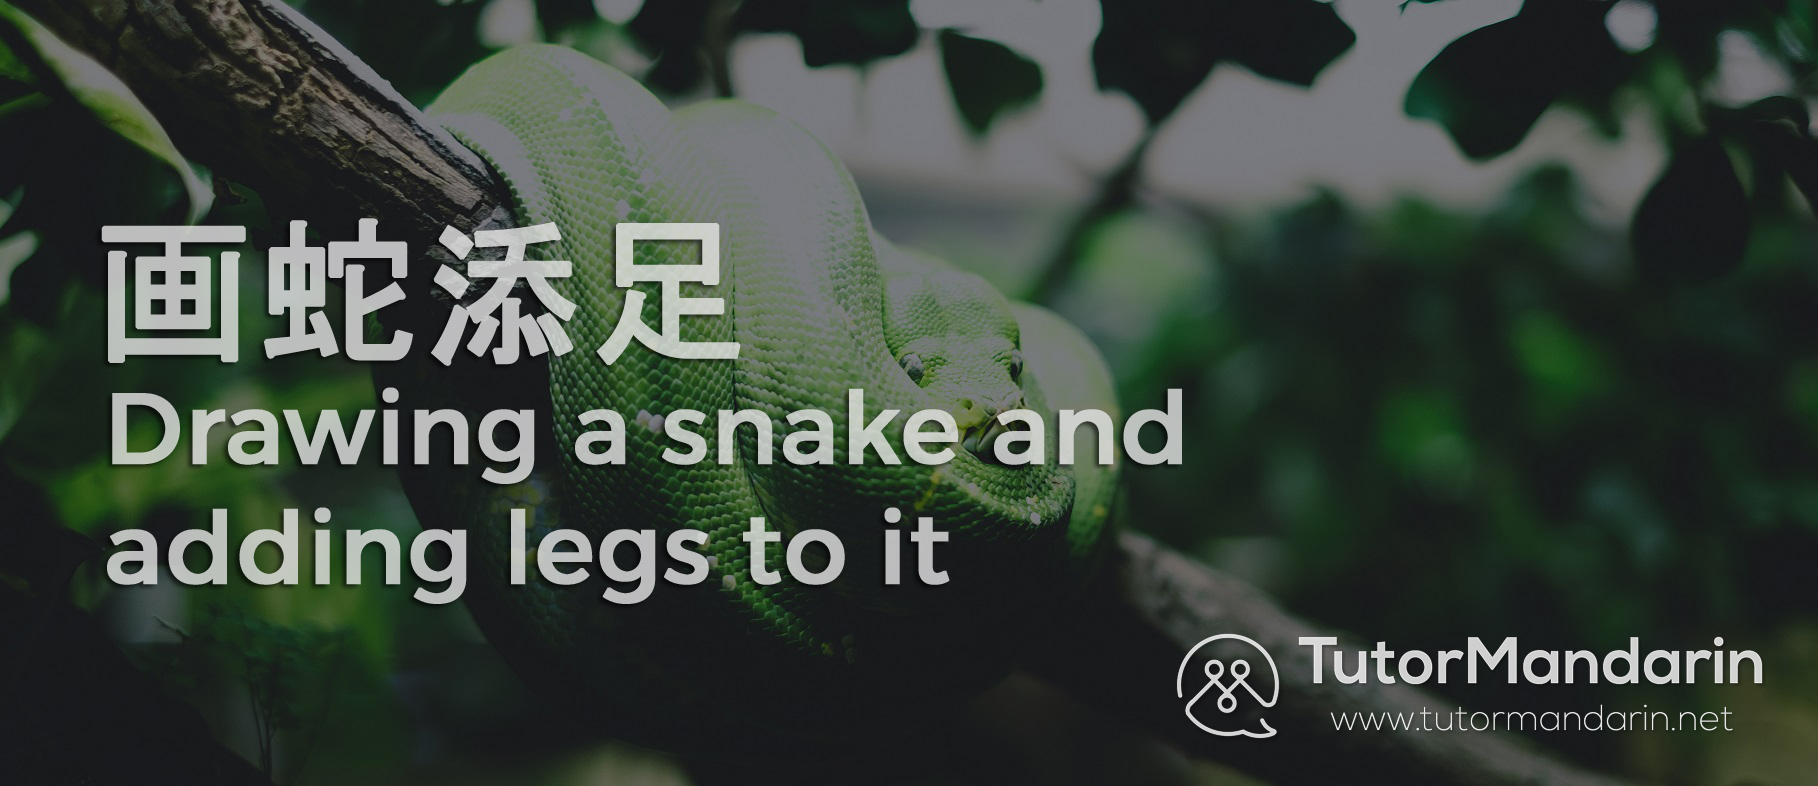 learn chinese chengyu